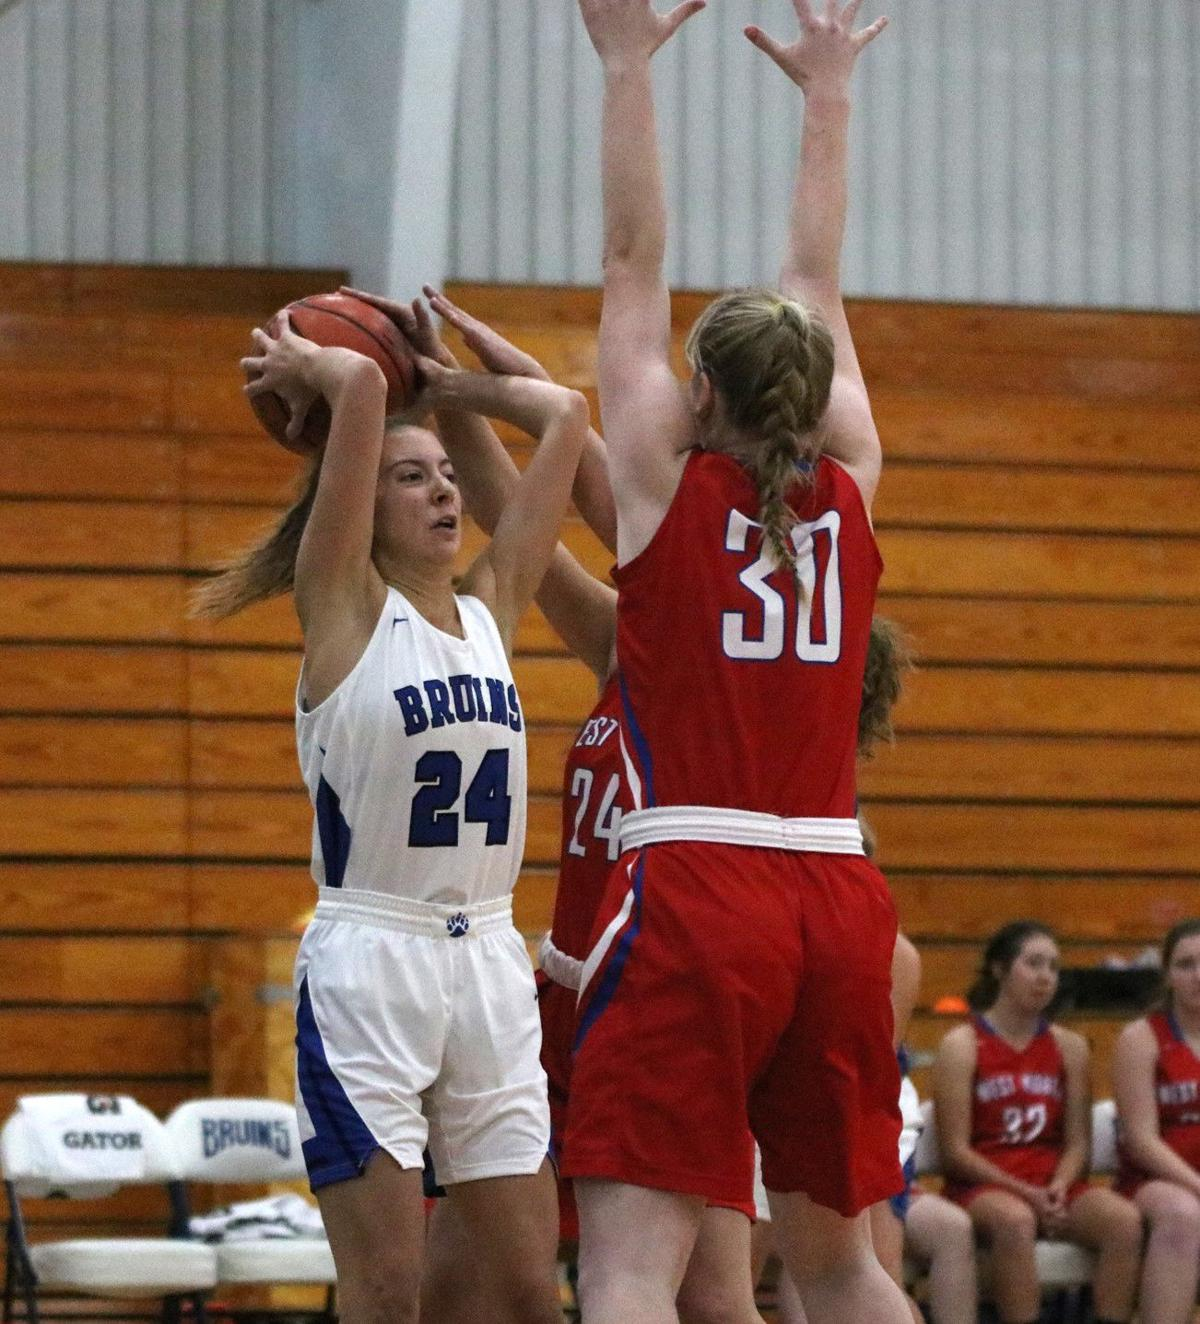 West Noble at Bethany Christian girls basketball 11 7 19 pic 02